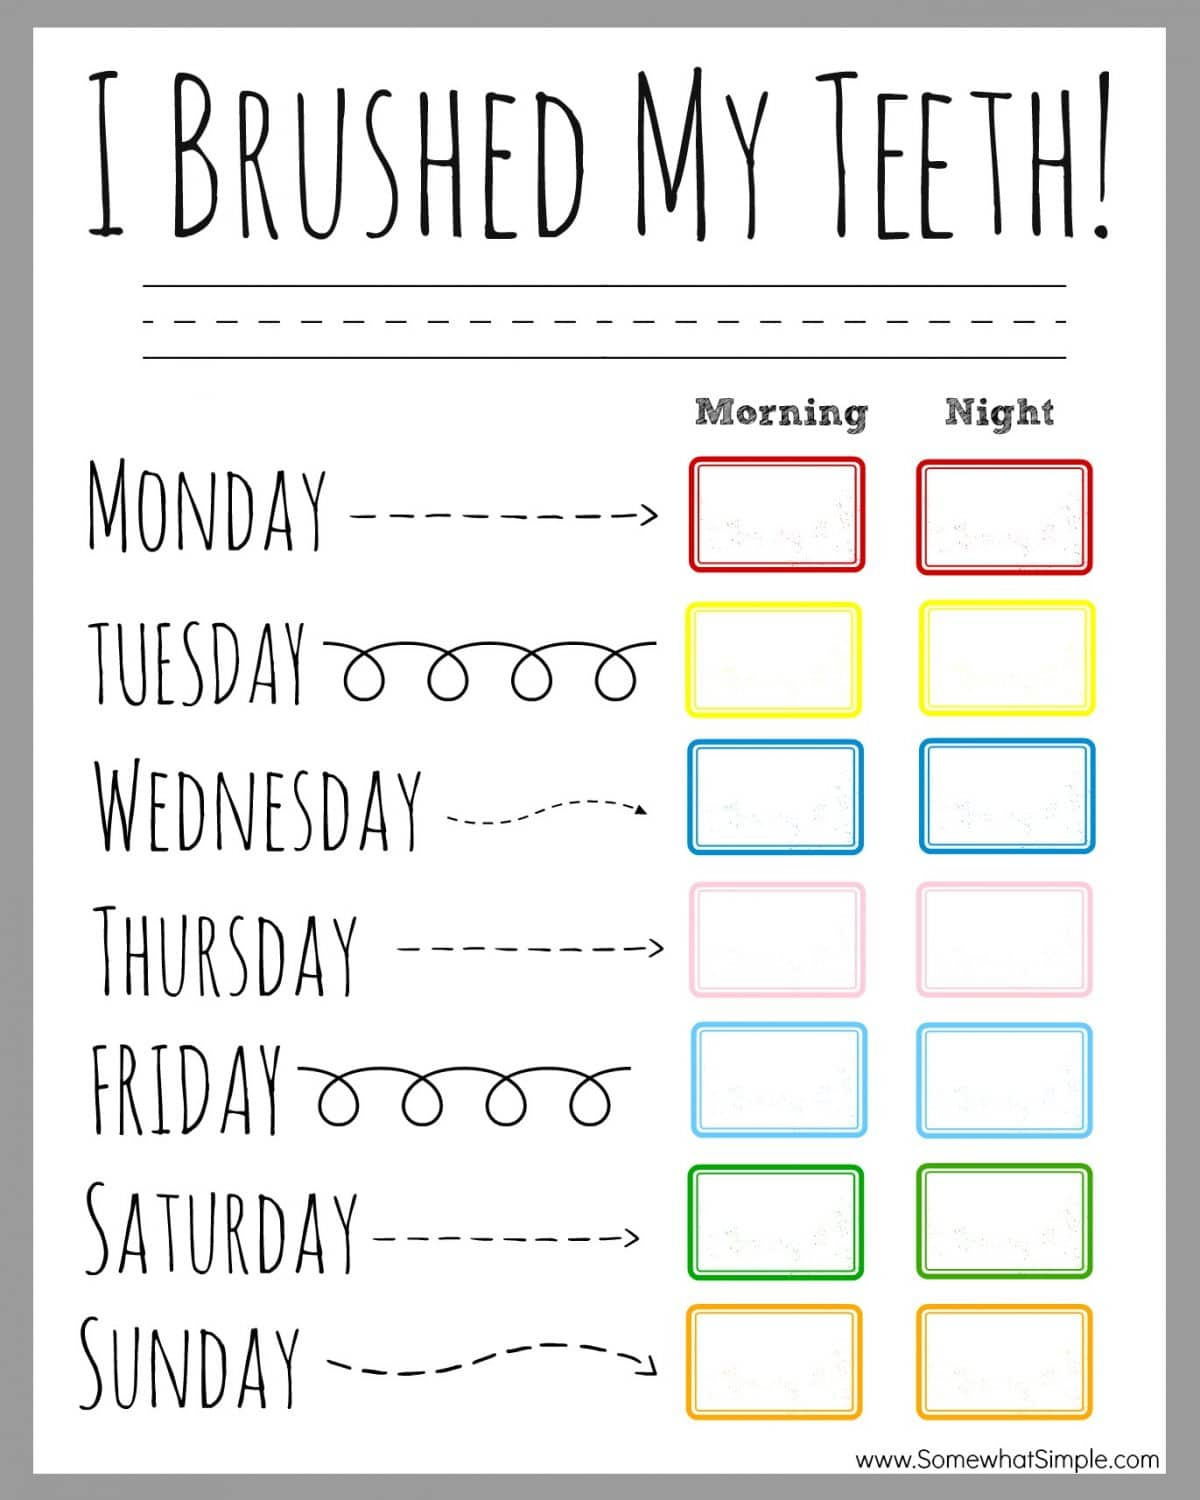 Your Name Here Calendars Custom Business Calendars Teeth Brushing Incentive Chart Somewhat Simple